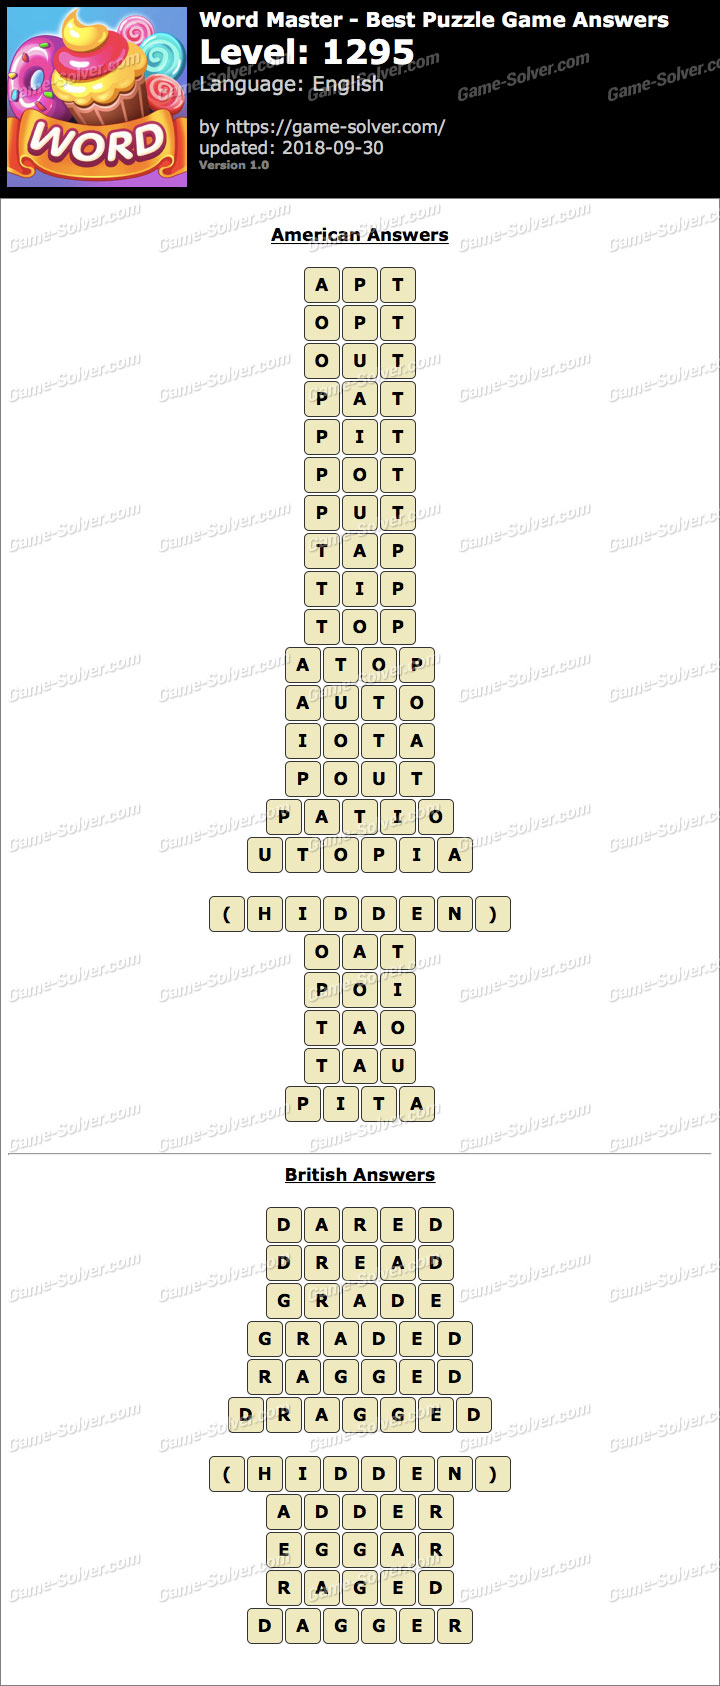 Word Master-Best Puzzle Game Level 1295 Answers